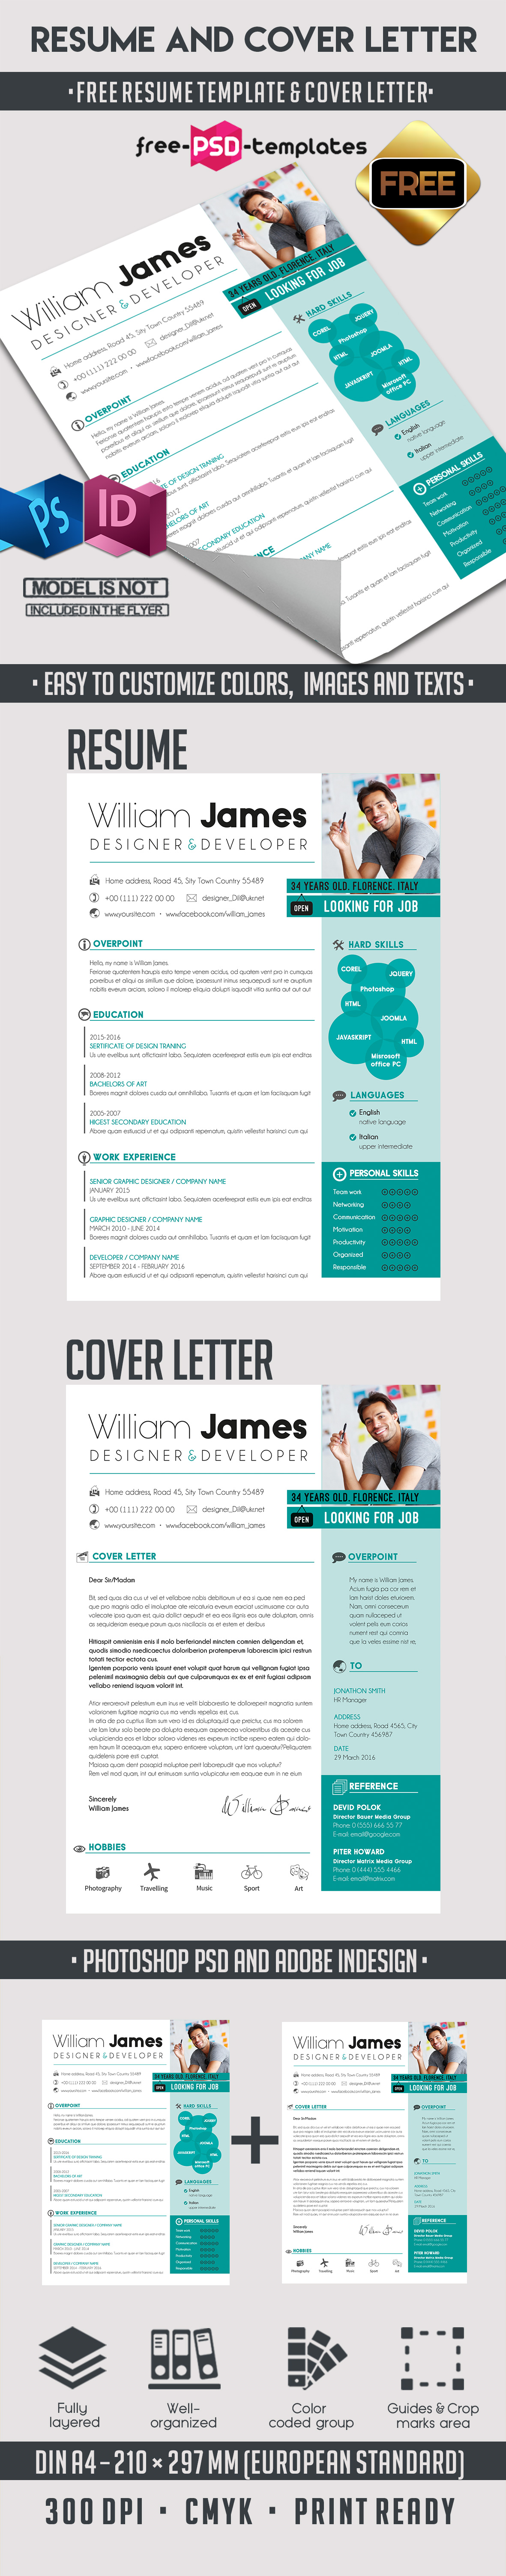 Bigpreview_free Resume Template Cover Letter  Free Resume And Cover Letter Templates